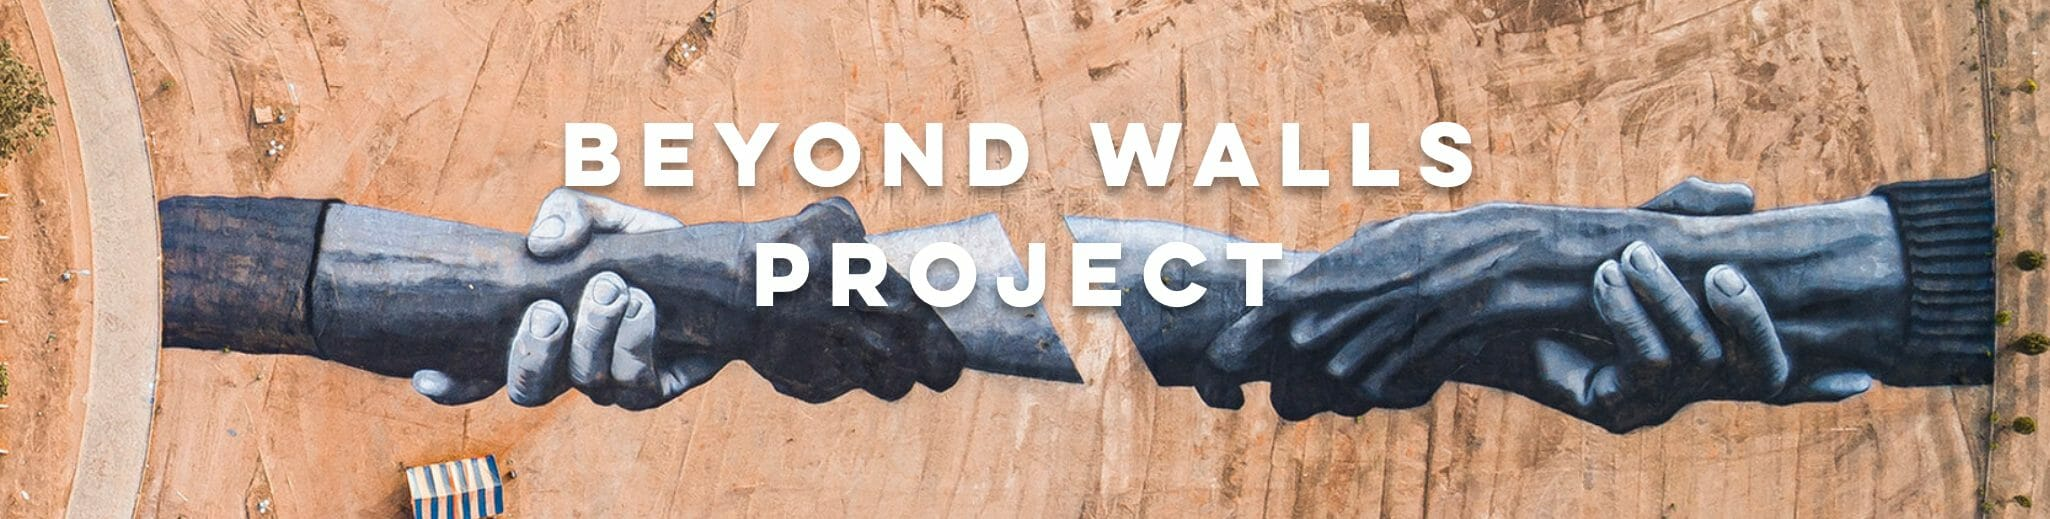 Beyond Walls Project saype